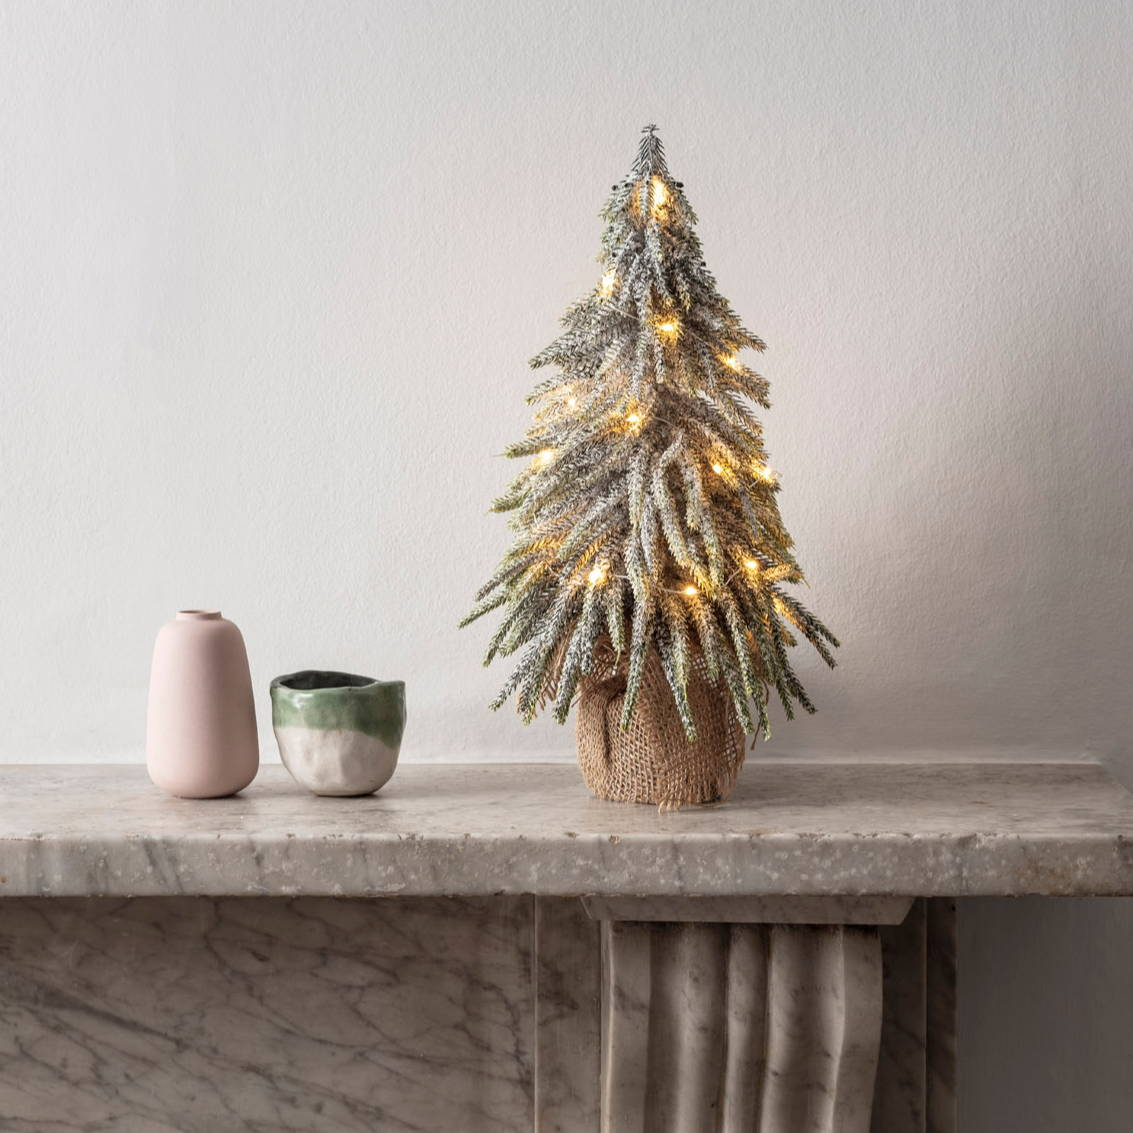 Pre Lit Mini Christmas Tree on a mantelpiece